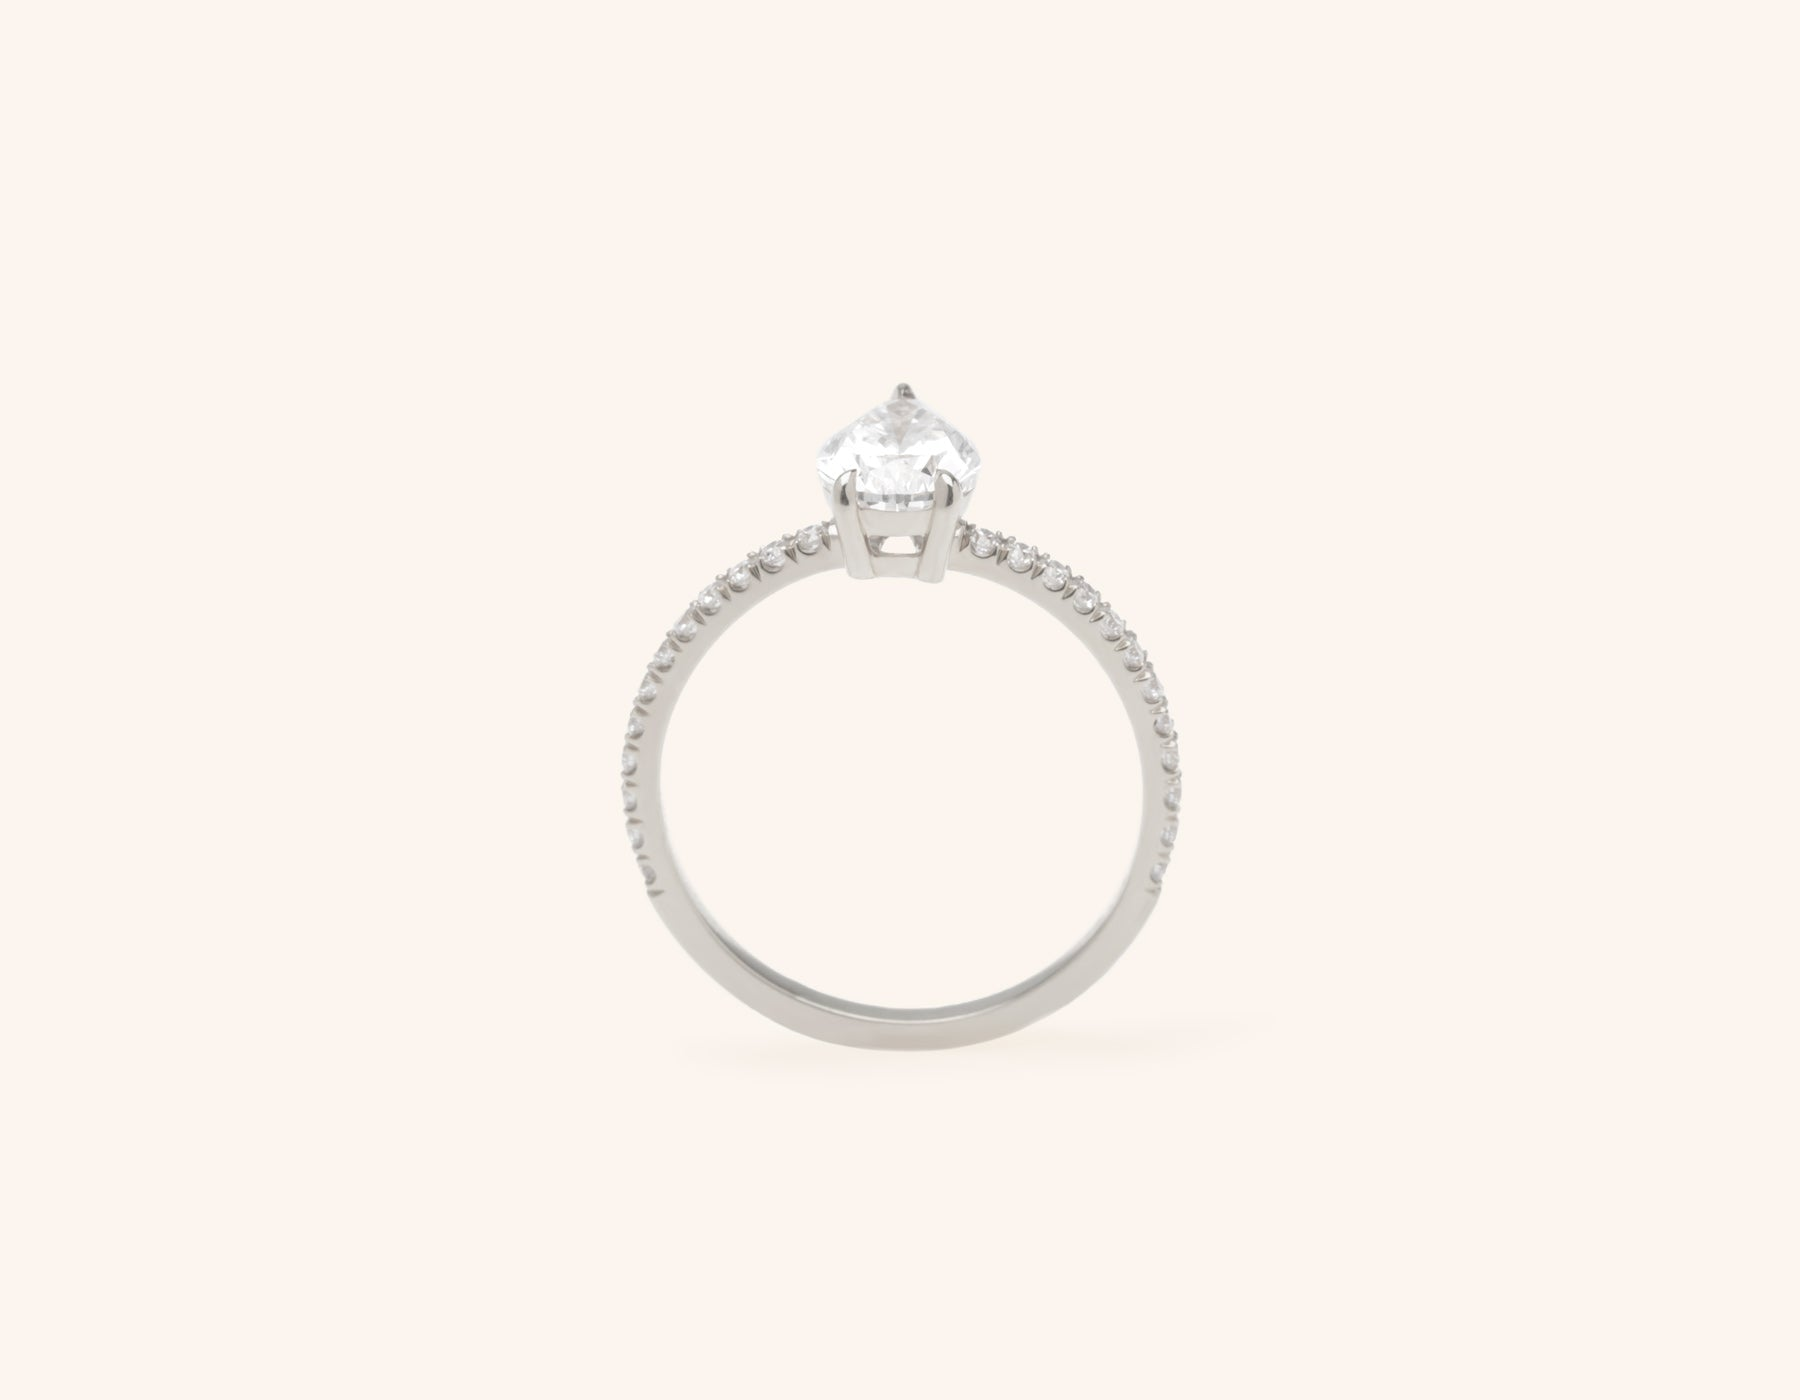 Vrai & Oro platinum Diamond engagement ring The pear pave simple classic band